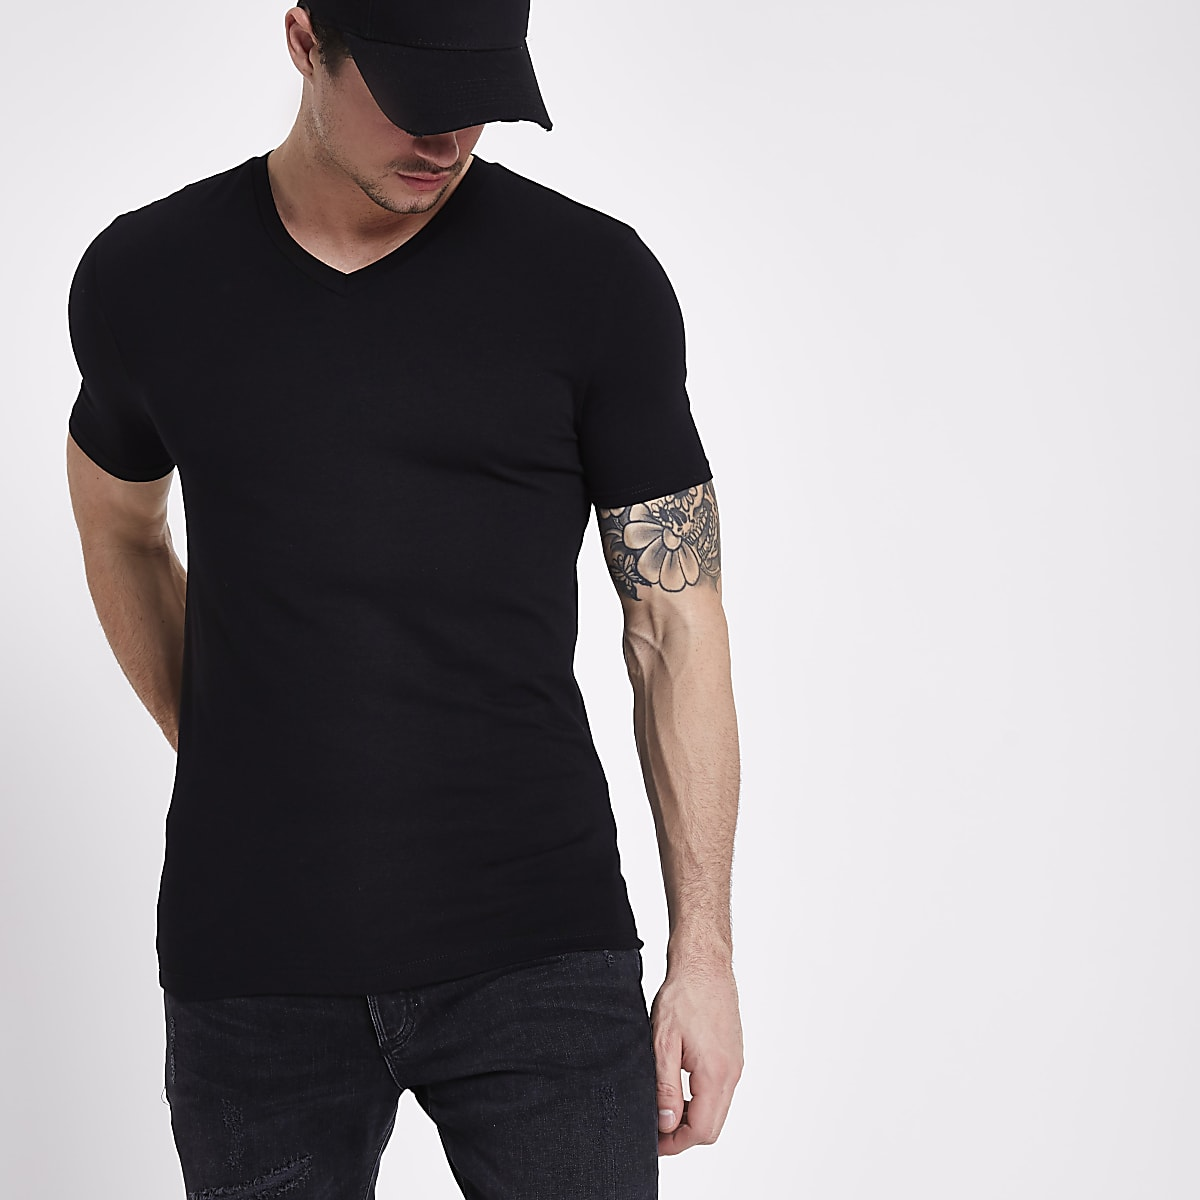 b8395107c88 Black muscle fit V neck T-shirt